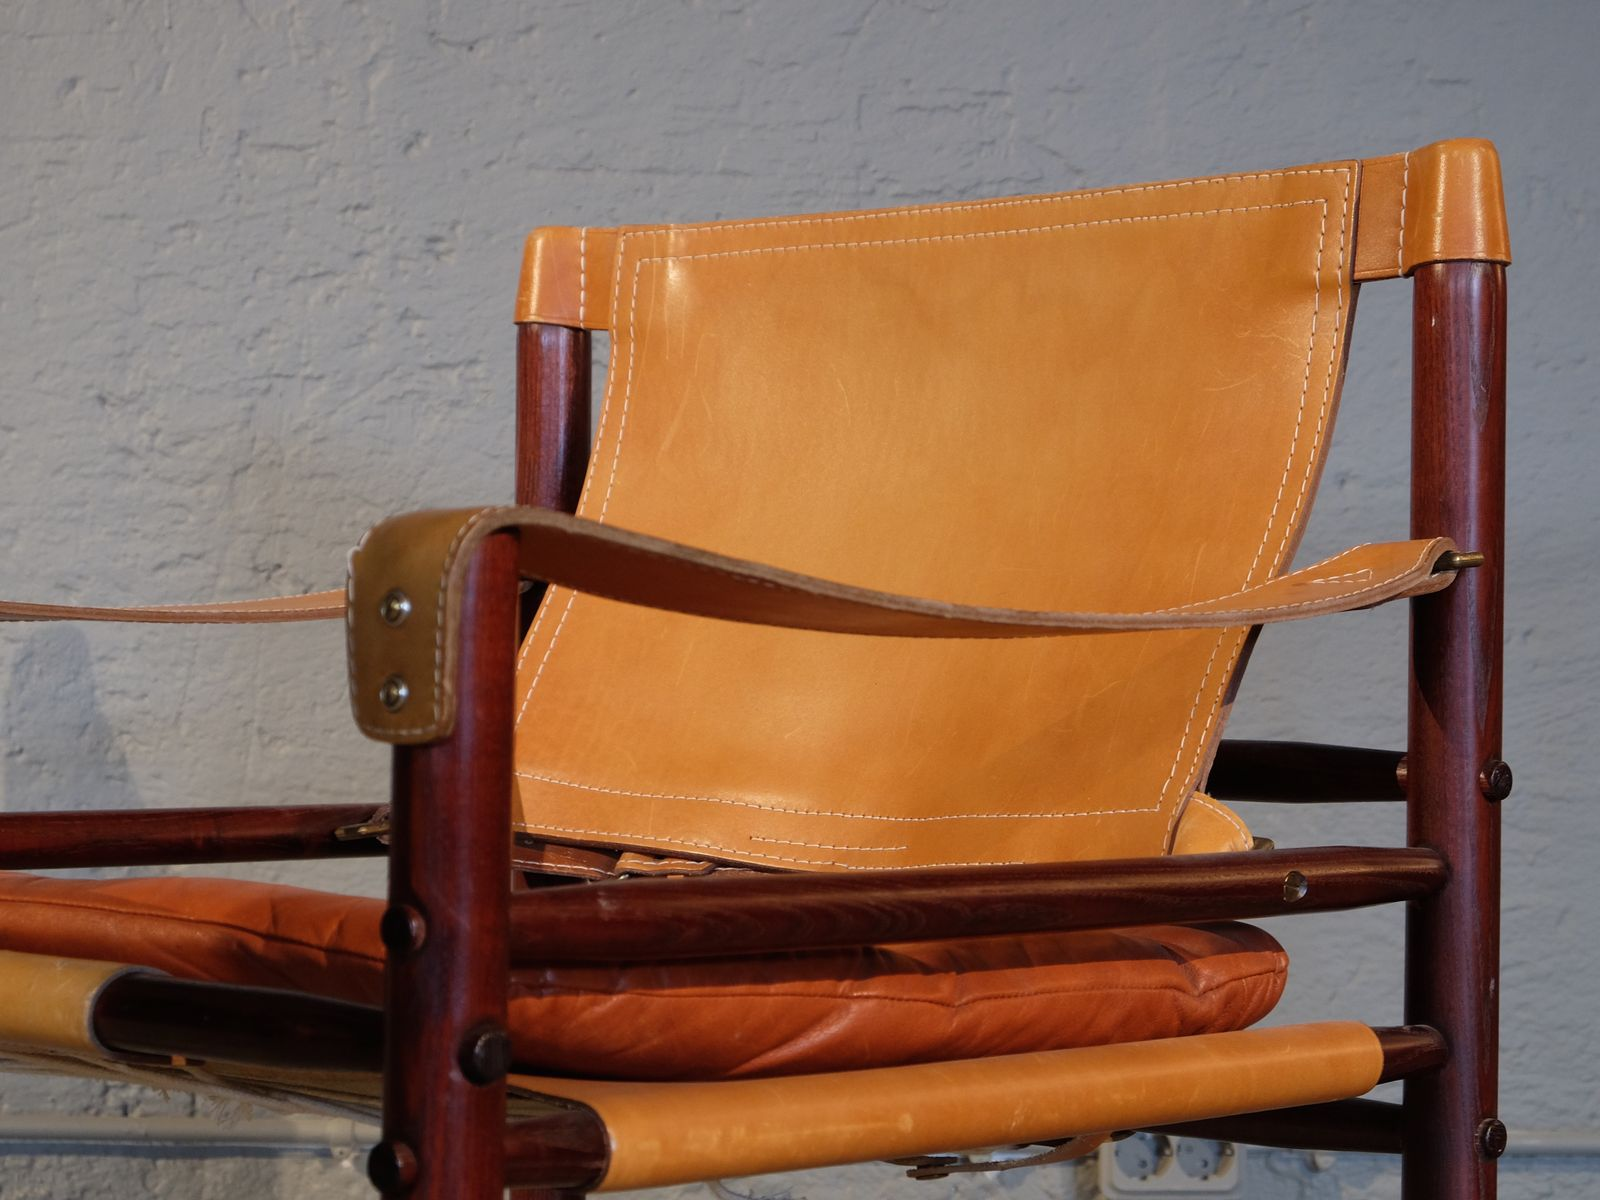 Ordinaire Leather Safari Chair Model Sirocco By Arne Norell, 1960s 7. £2,376.00